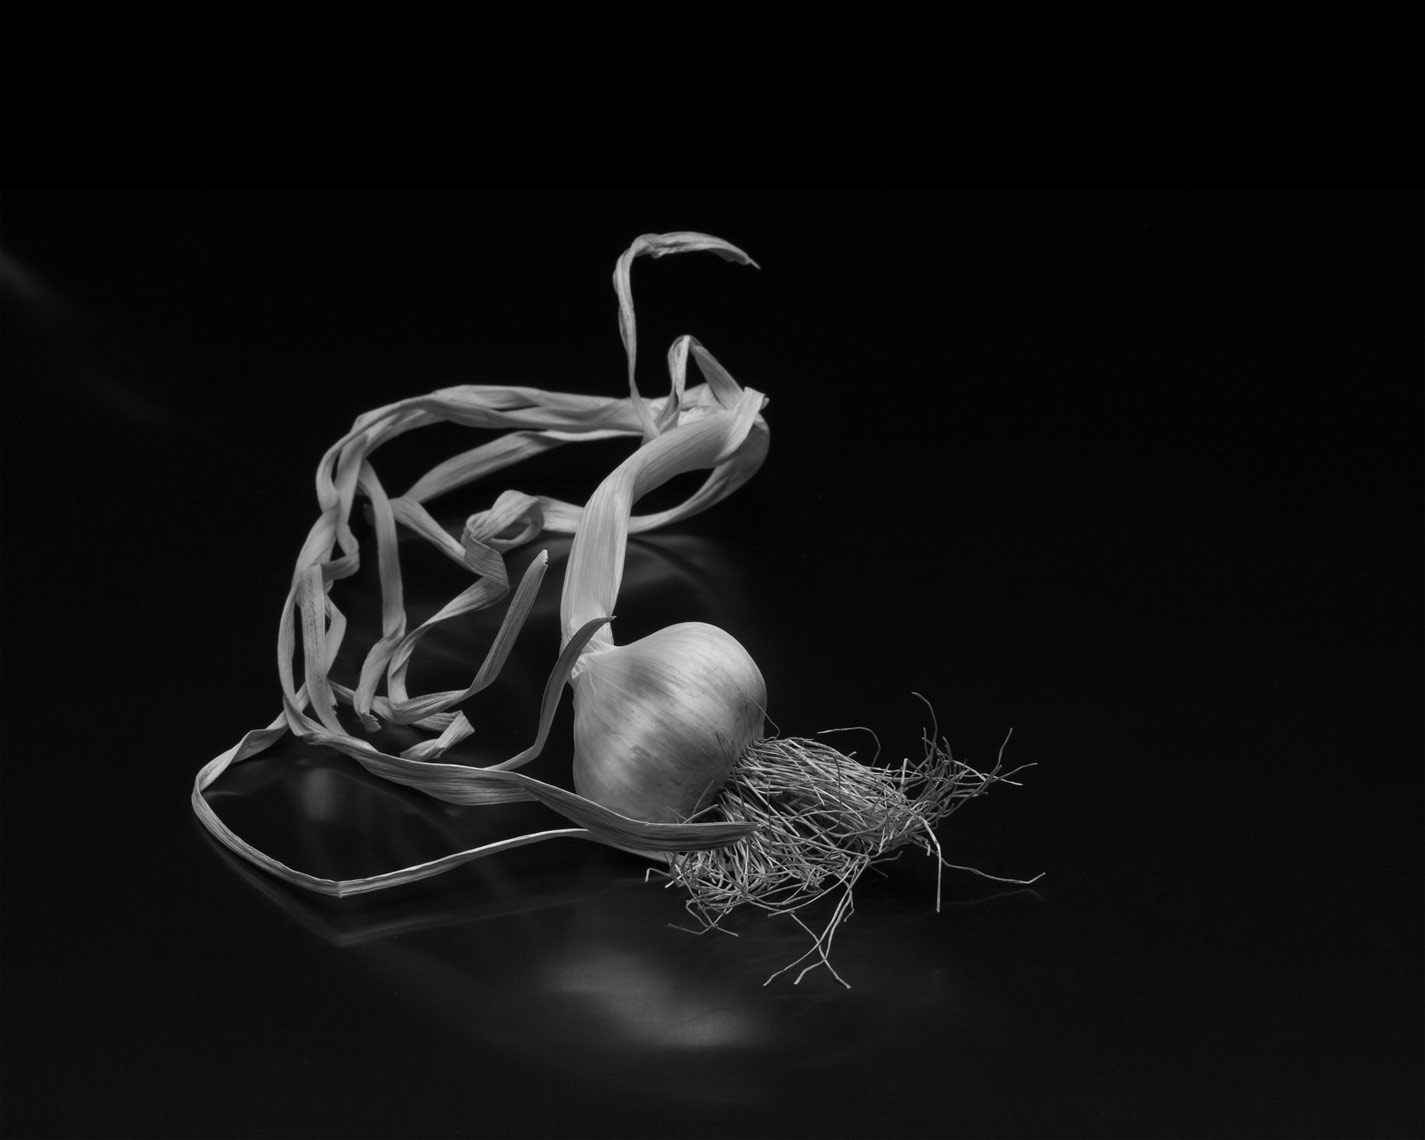 garlic as art, Rose Hodges Food Photography San Francisco